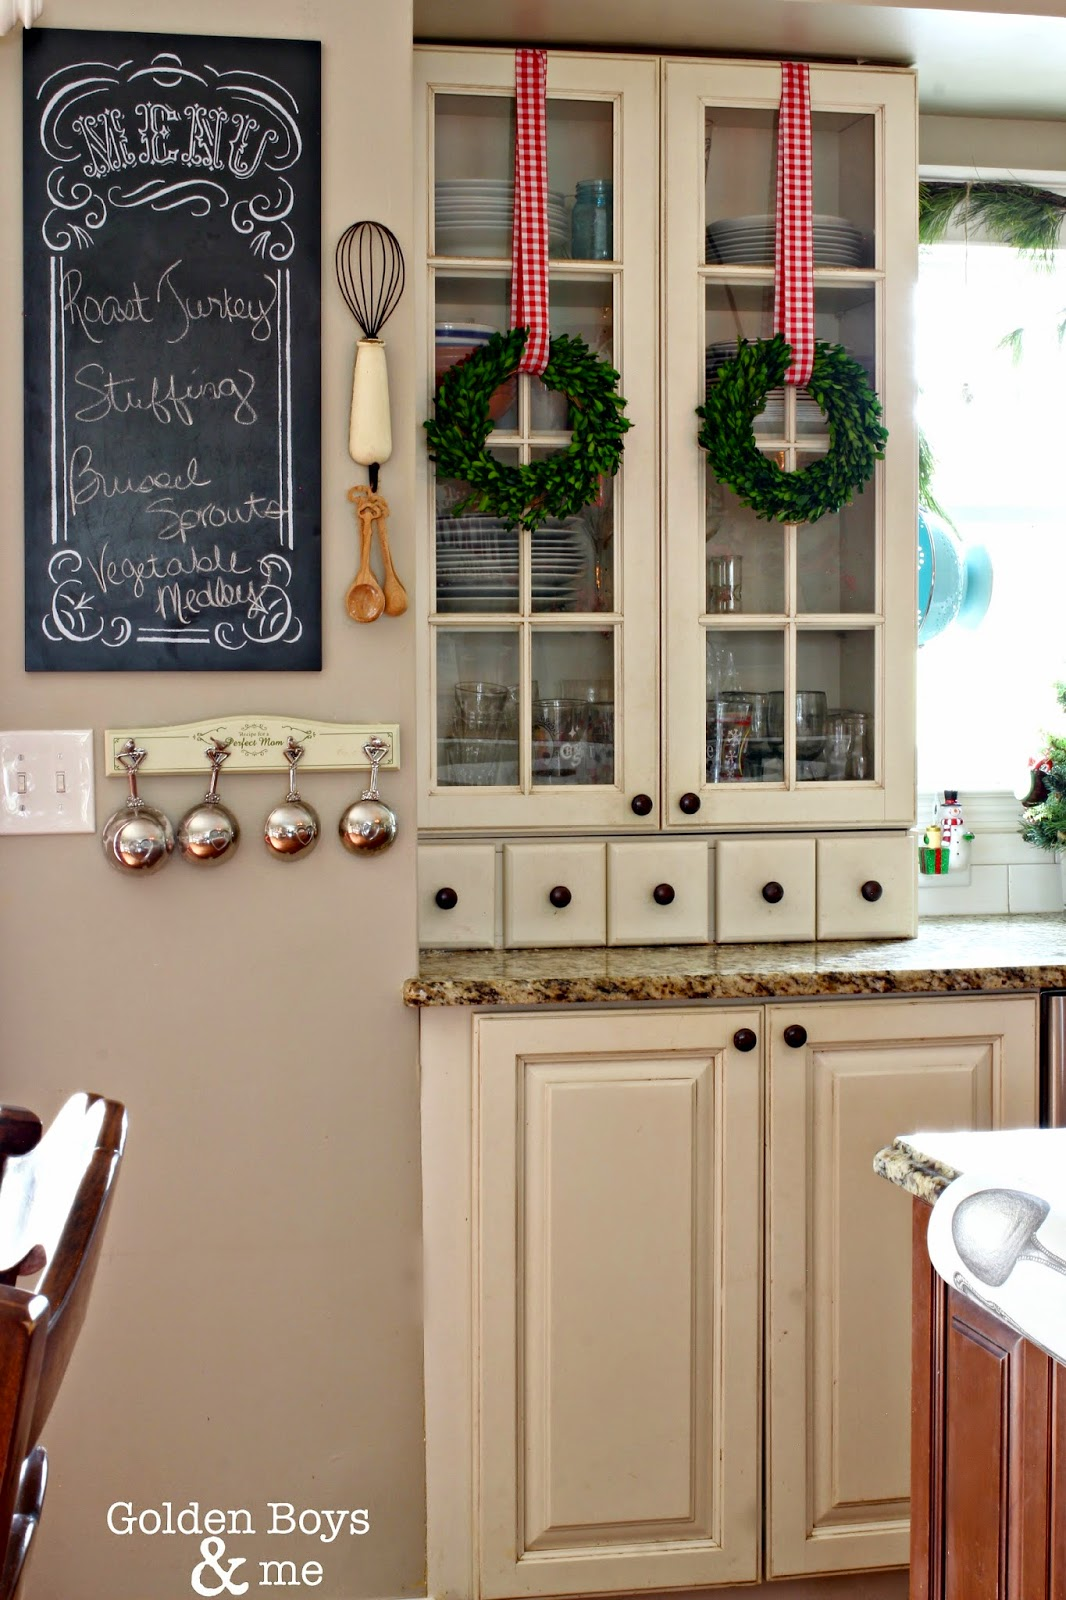 Preserved boxwood wreaths hung on glass cabinet doors in Christmas kitchen.-www.goldenboysandme.com